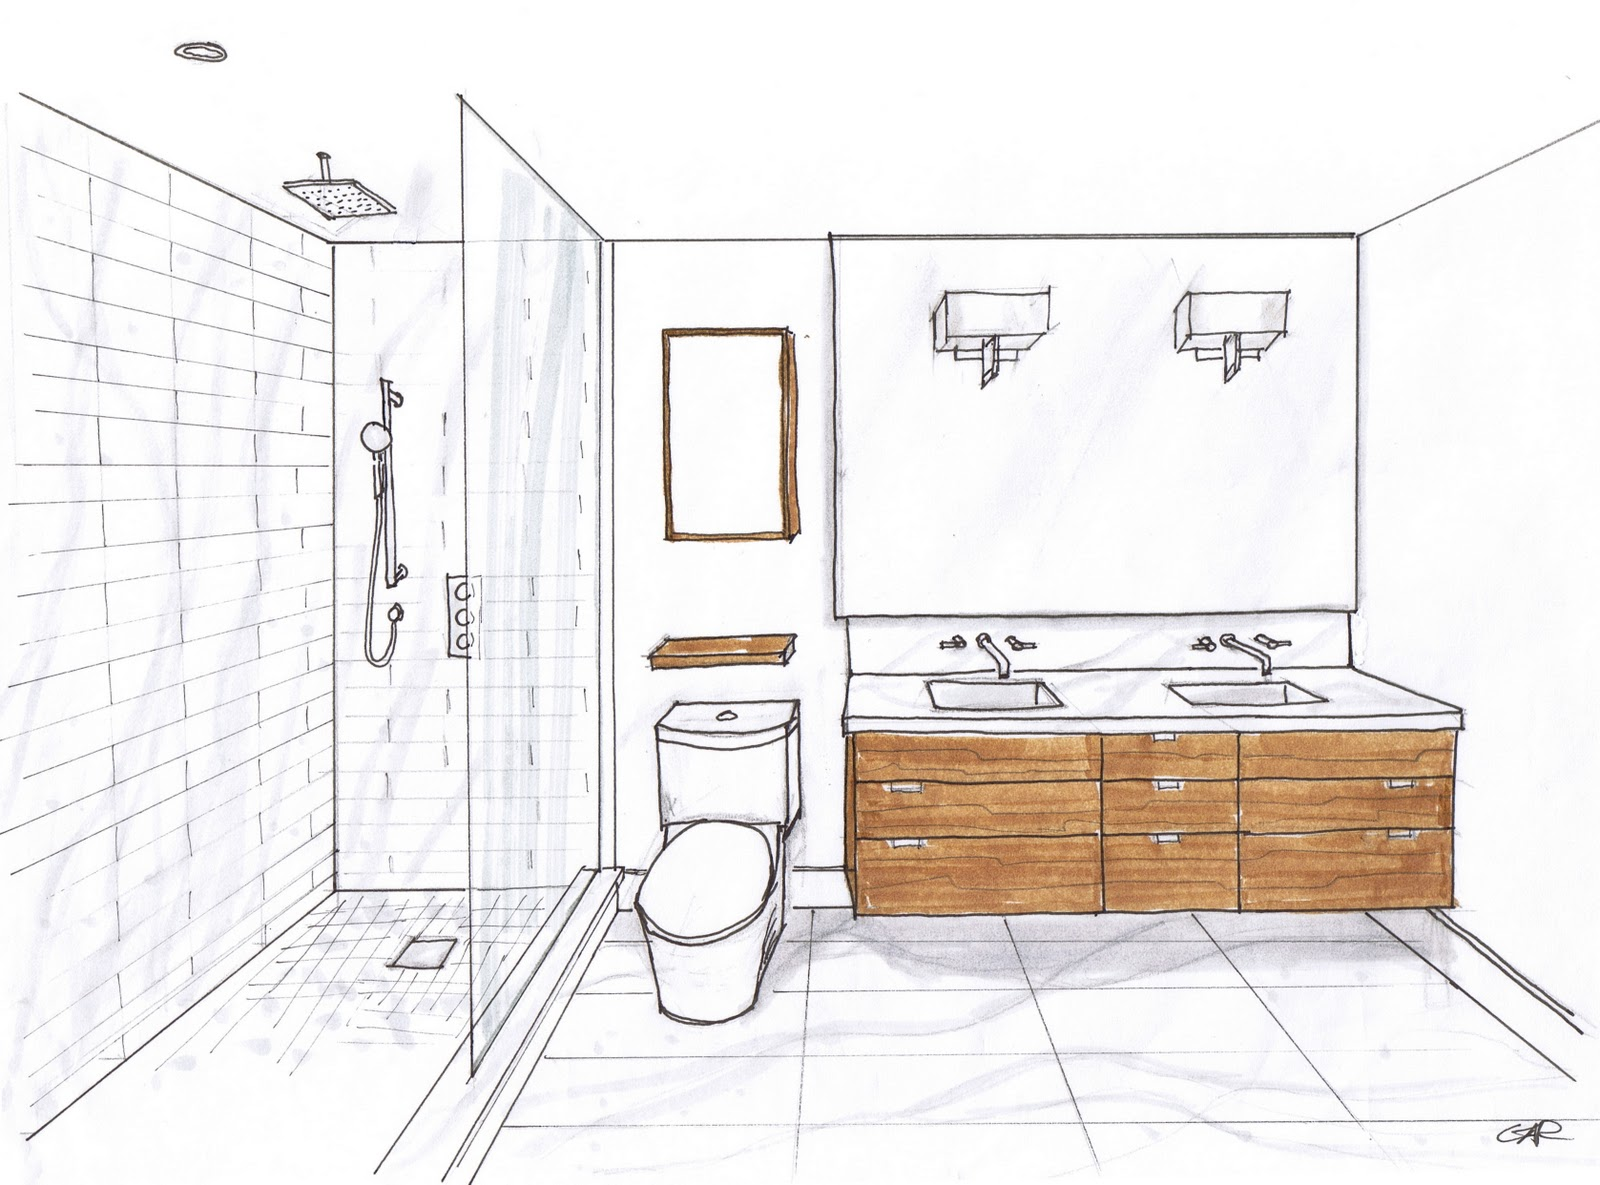 Creed 70 39 s bungalow bathroom designs for Compact bathroom layout